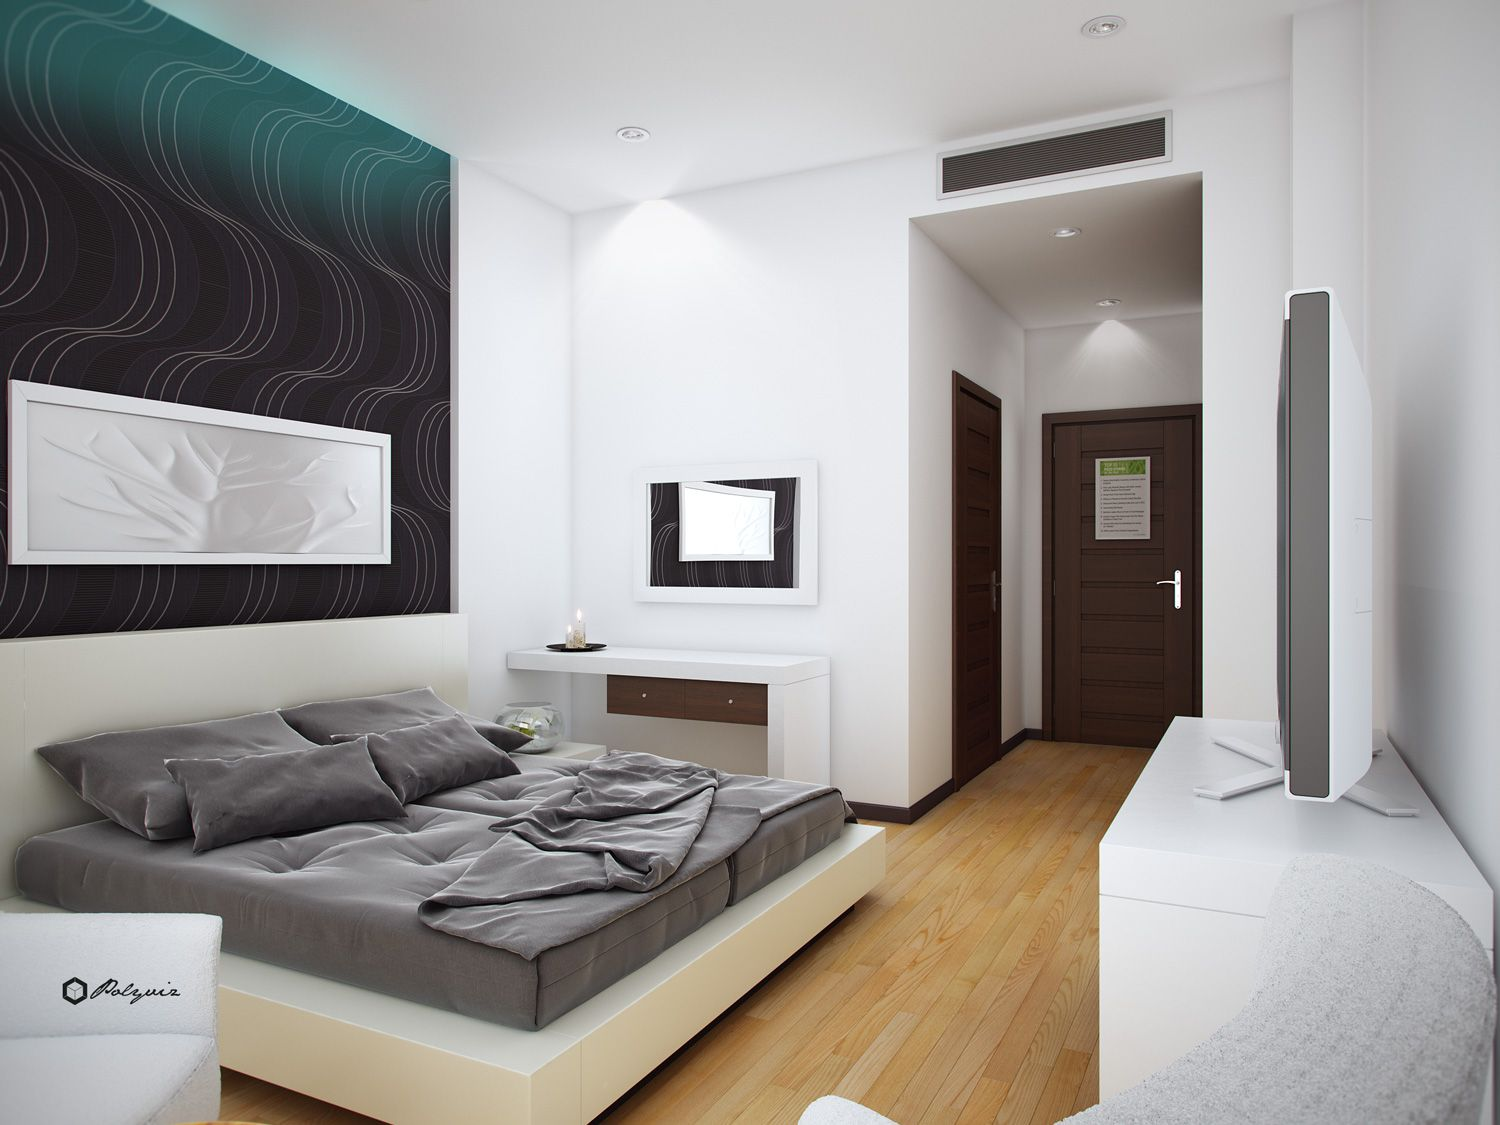 Modern hotel room design google search room design for Room interior design ideas